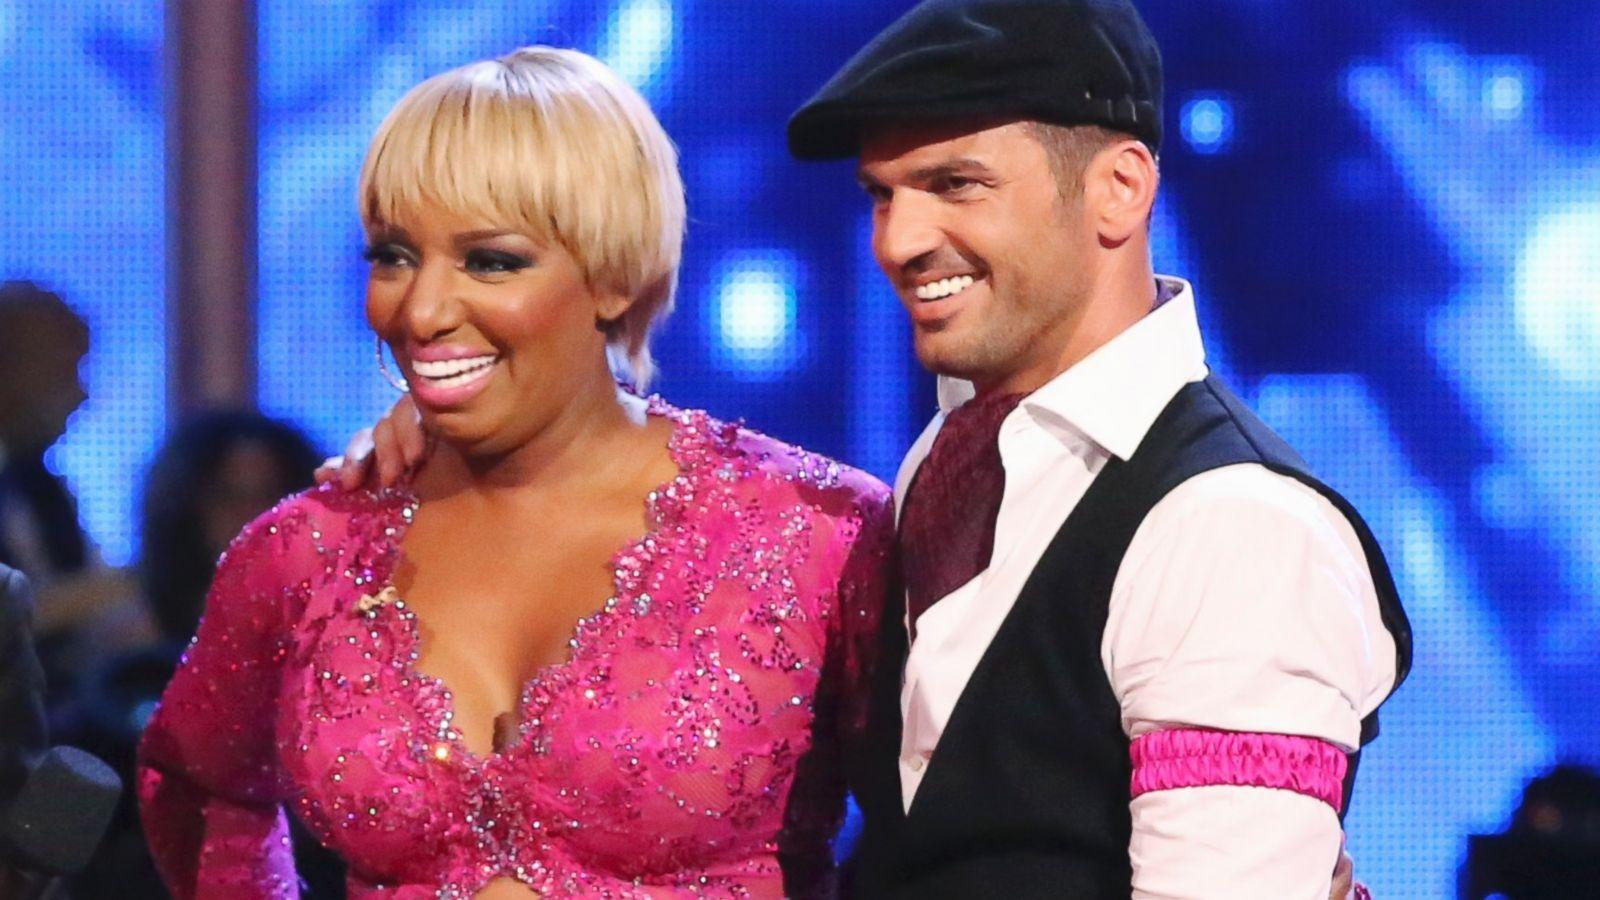 NeNe Leakes Shows Fans A New, Fresh Look And They Are Here For It